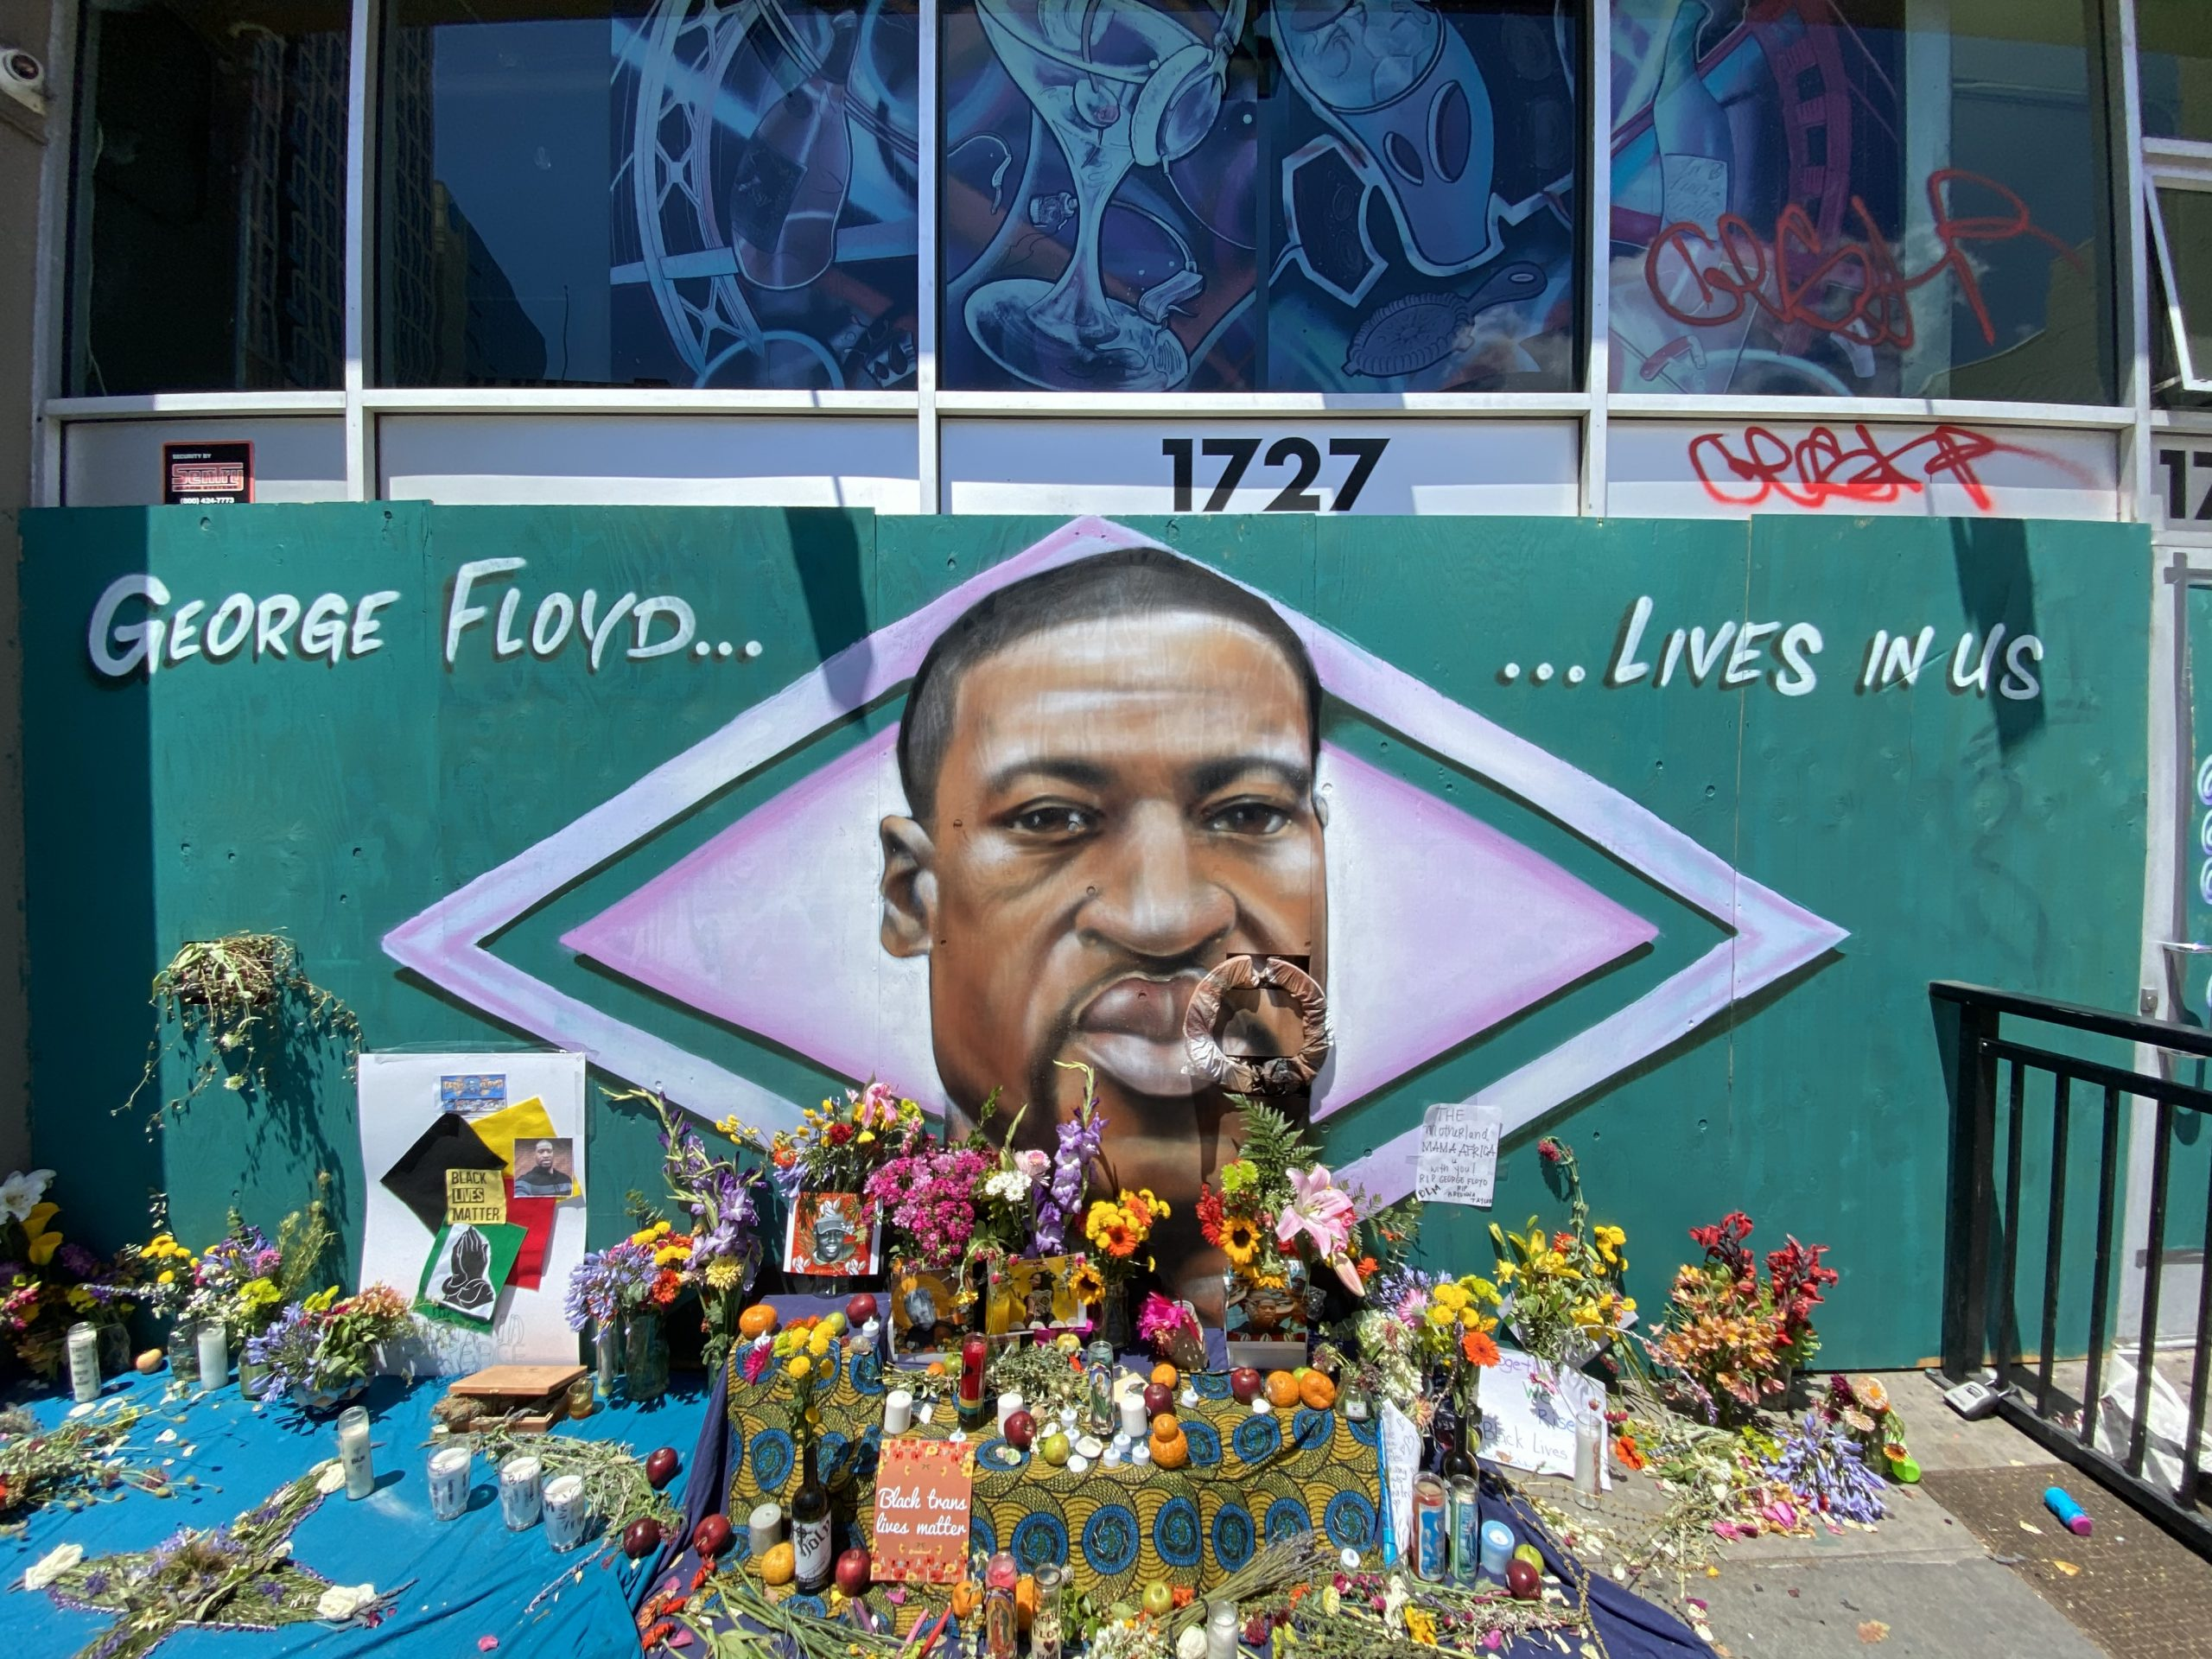 An image of an African American man at the center of a mural with a green background. Flowers are in front of it. It is an alter for the man who was killed by police.